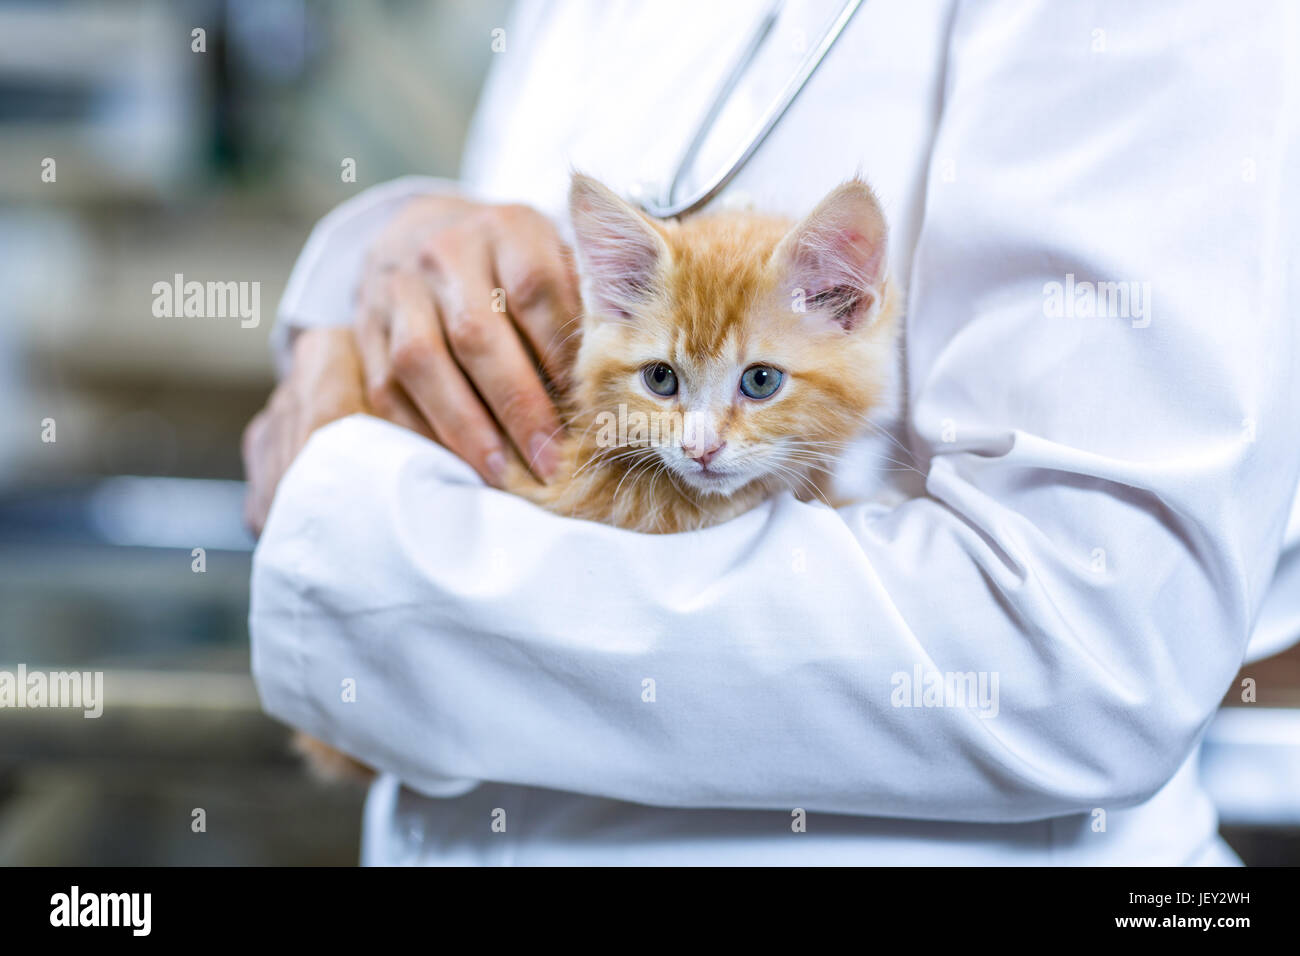 Close up of a cute kitten in vets arms - Stock Image